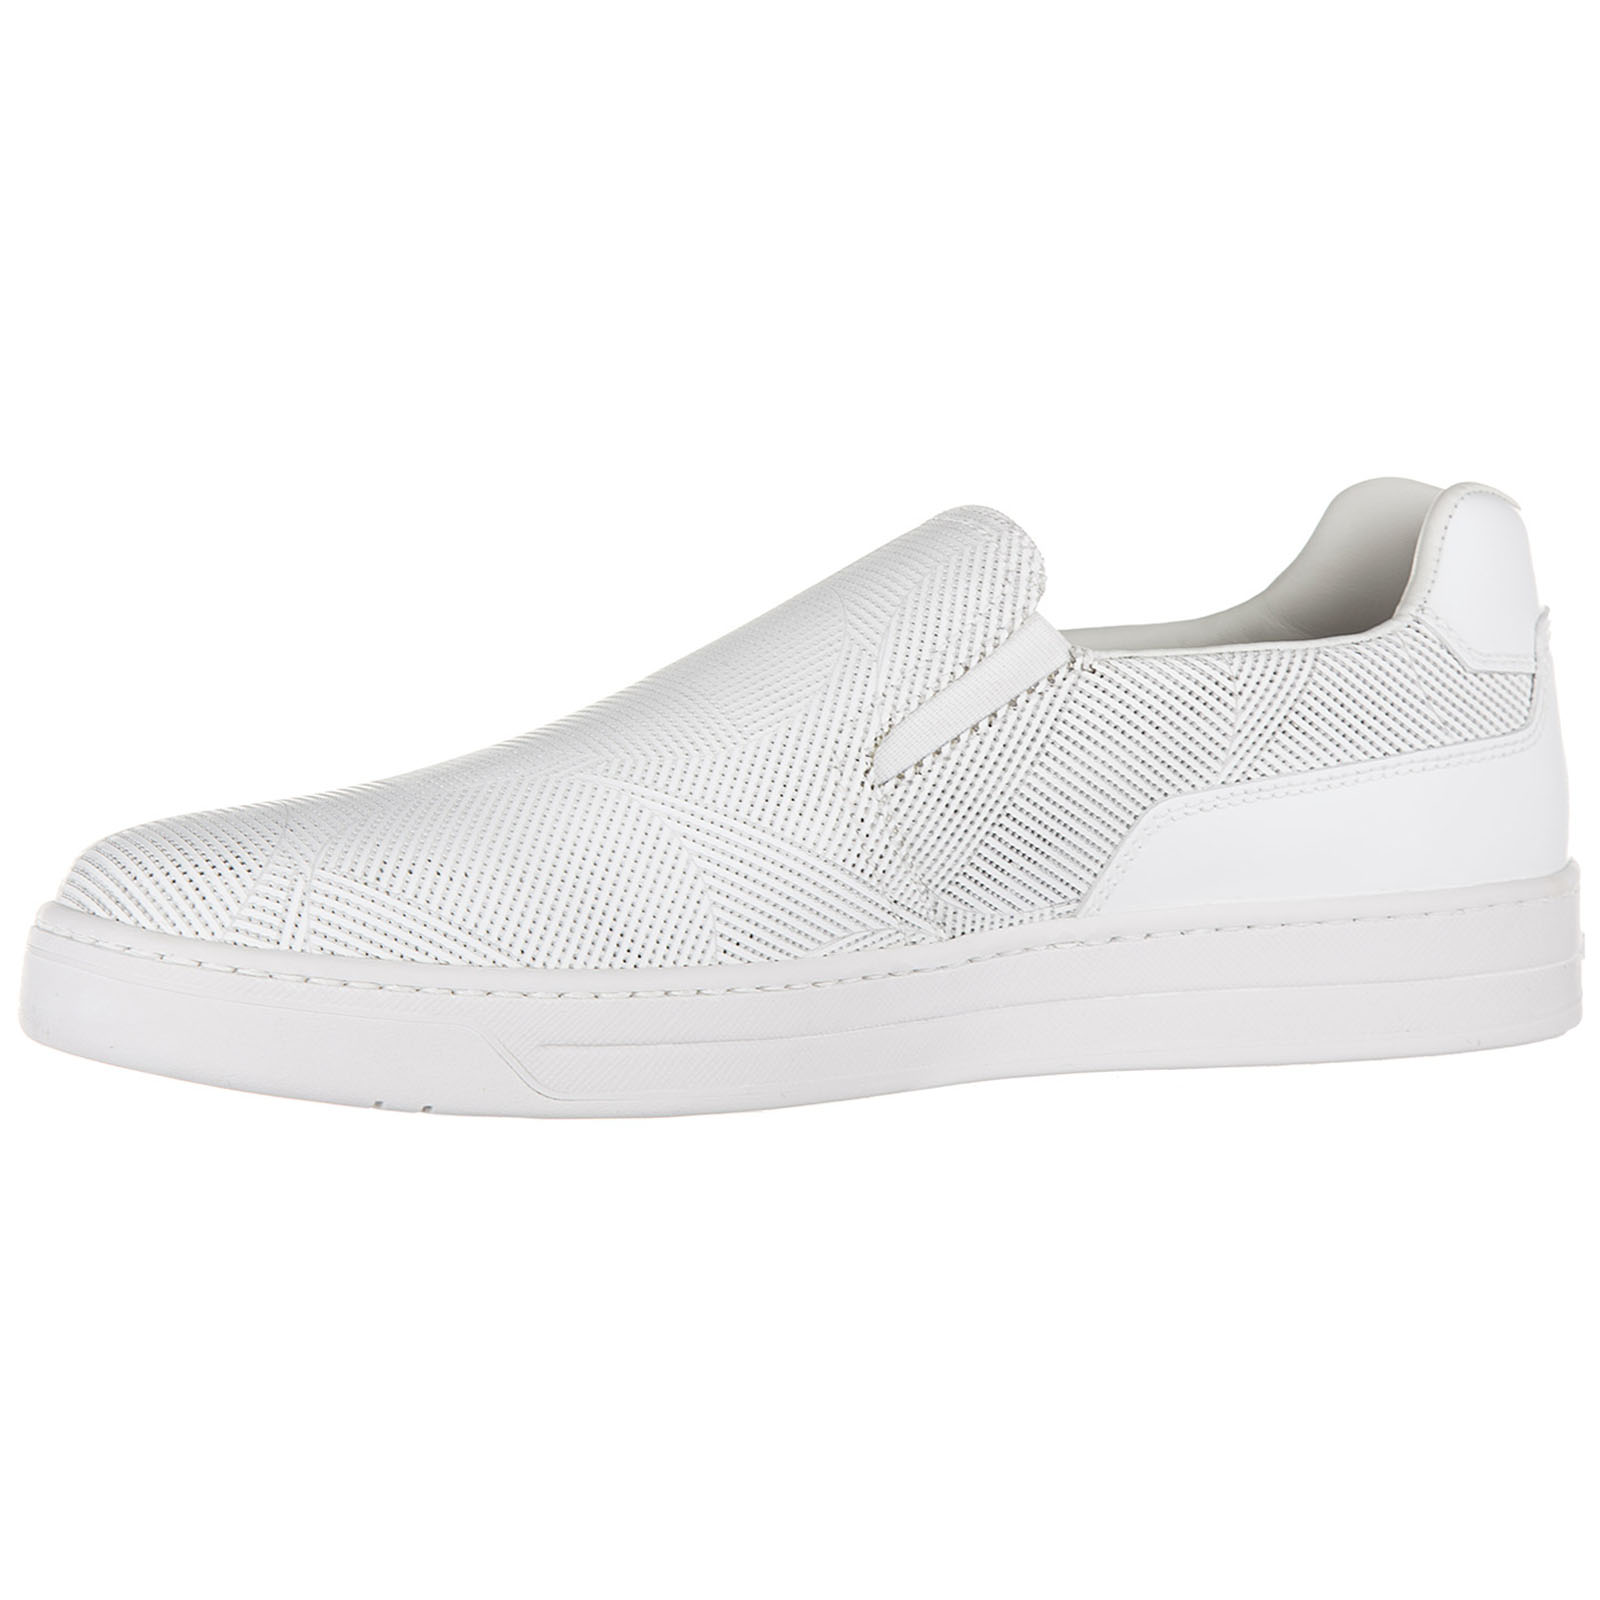 Herren leder slip on slipper sneakers